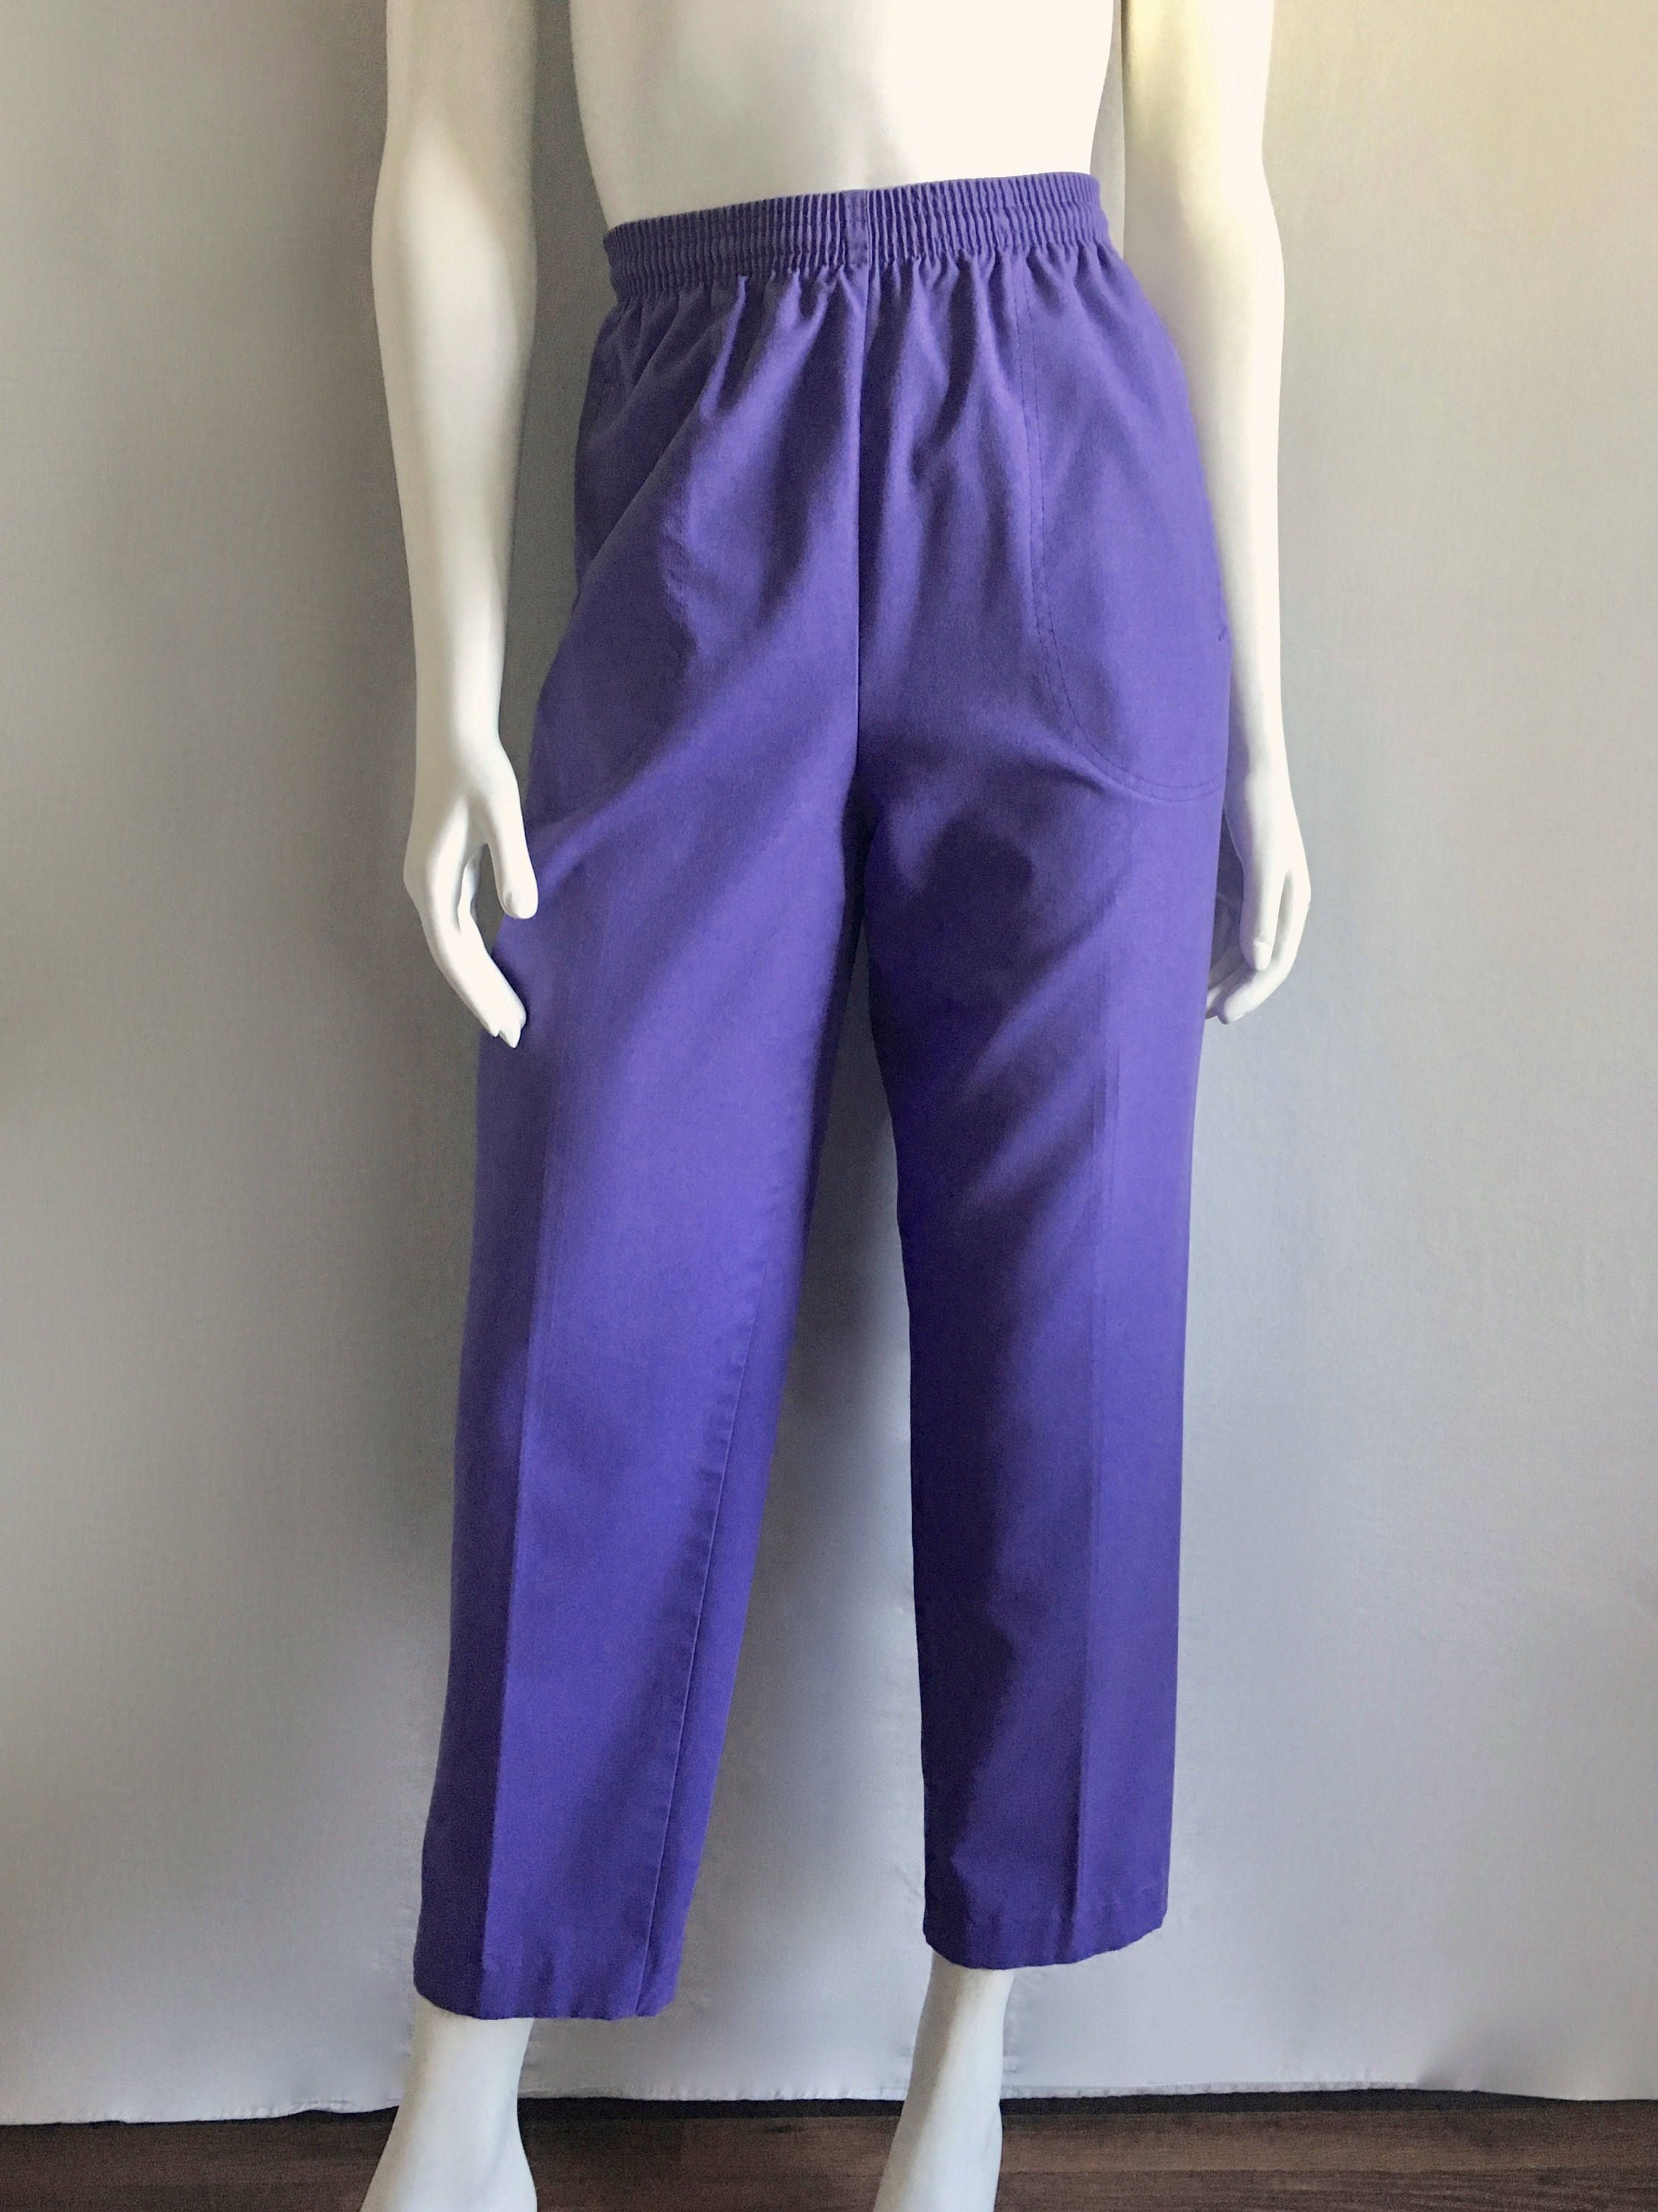 vtg 80s Lilac HIGH WAISTED pleated TROUSERS xs25 secretary pants tapered skinny lavender pastel purple high waist preppy